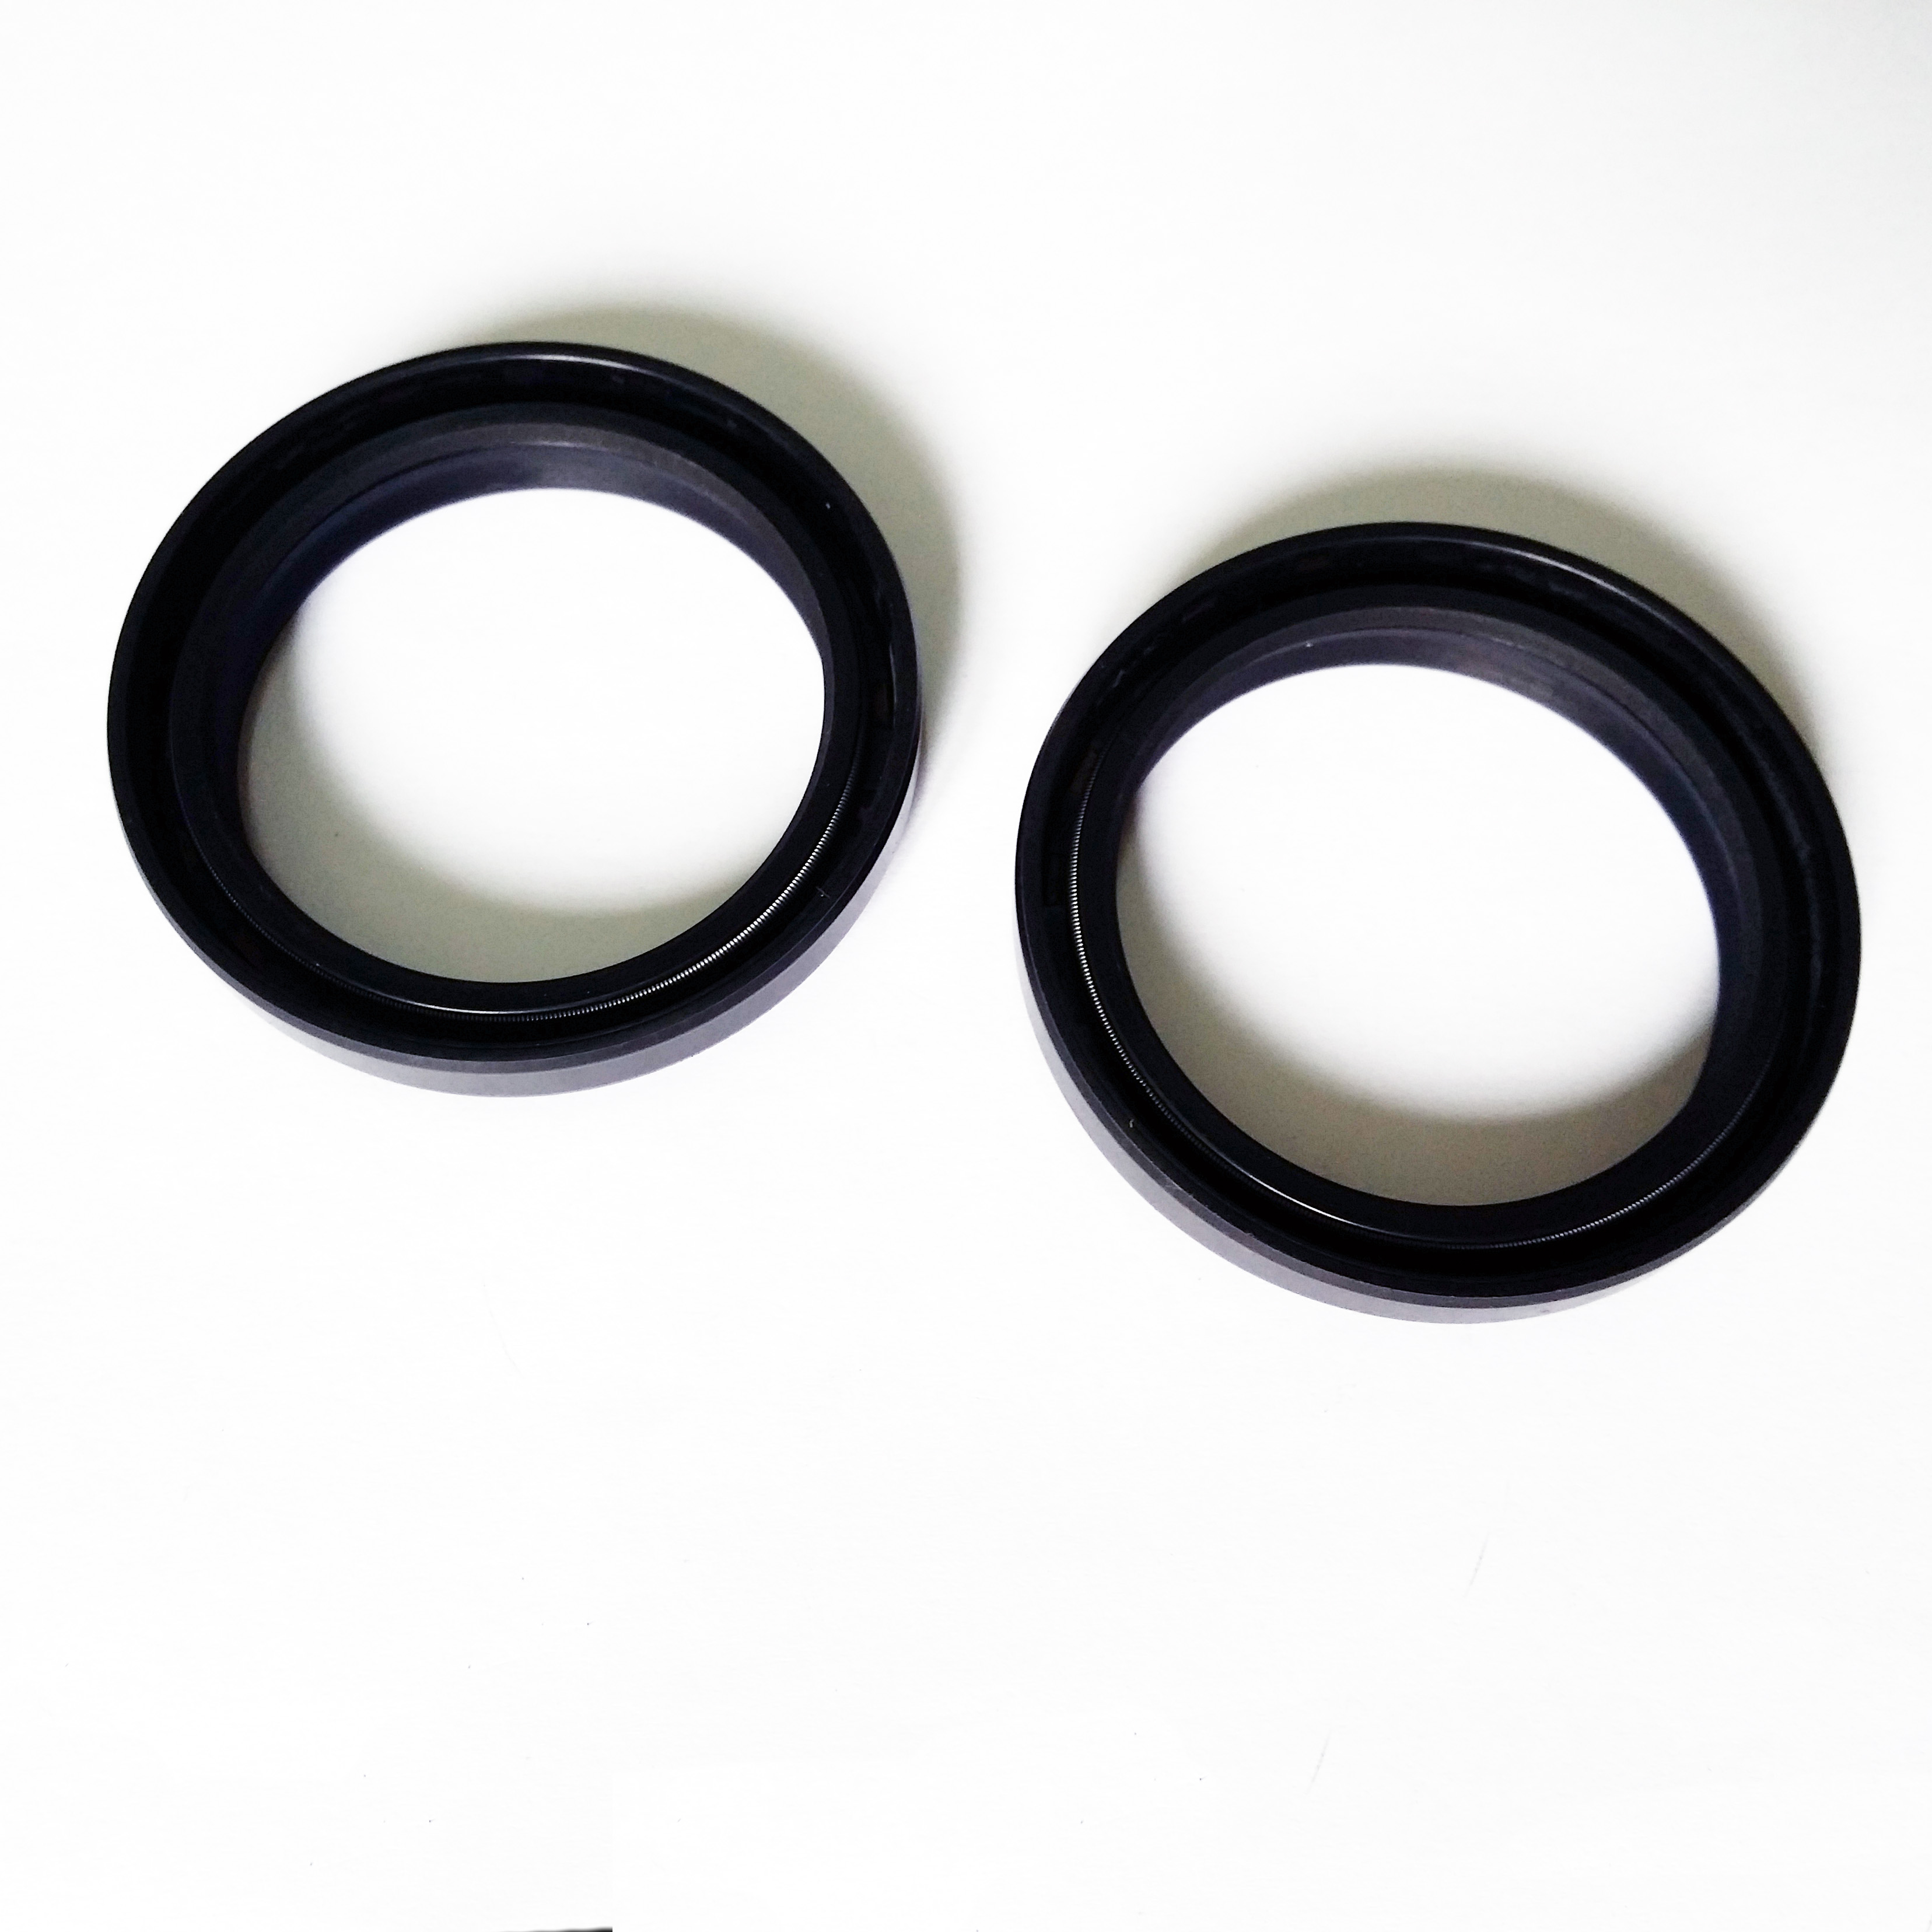 K-Tech Honda VFR750 RC30 1988-1992 NOK Front Fork Oil Seals